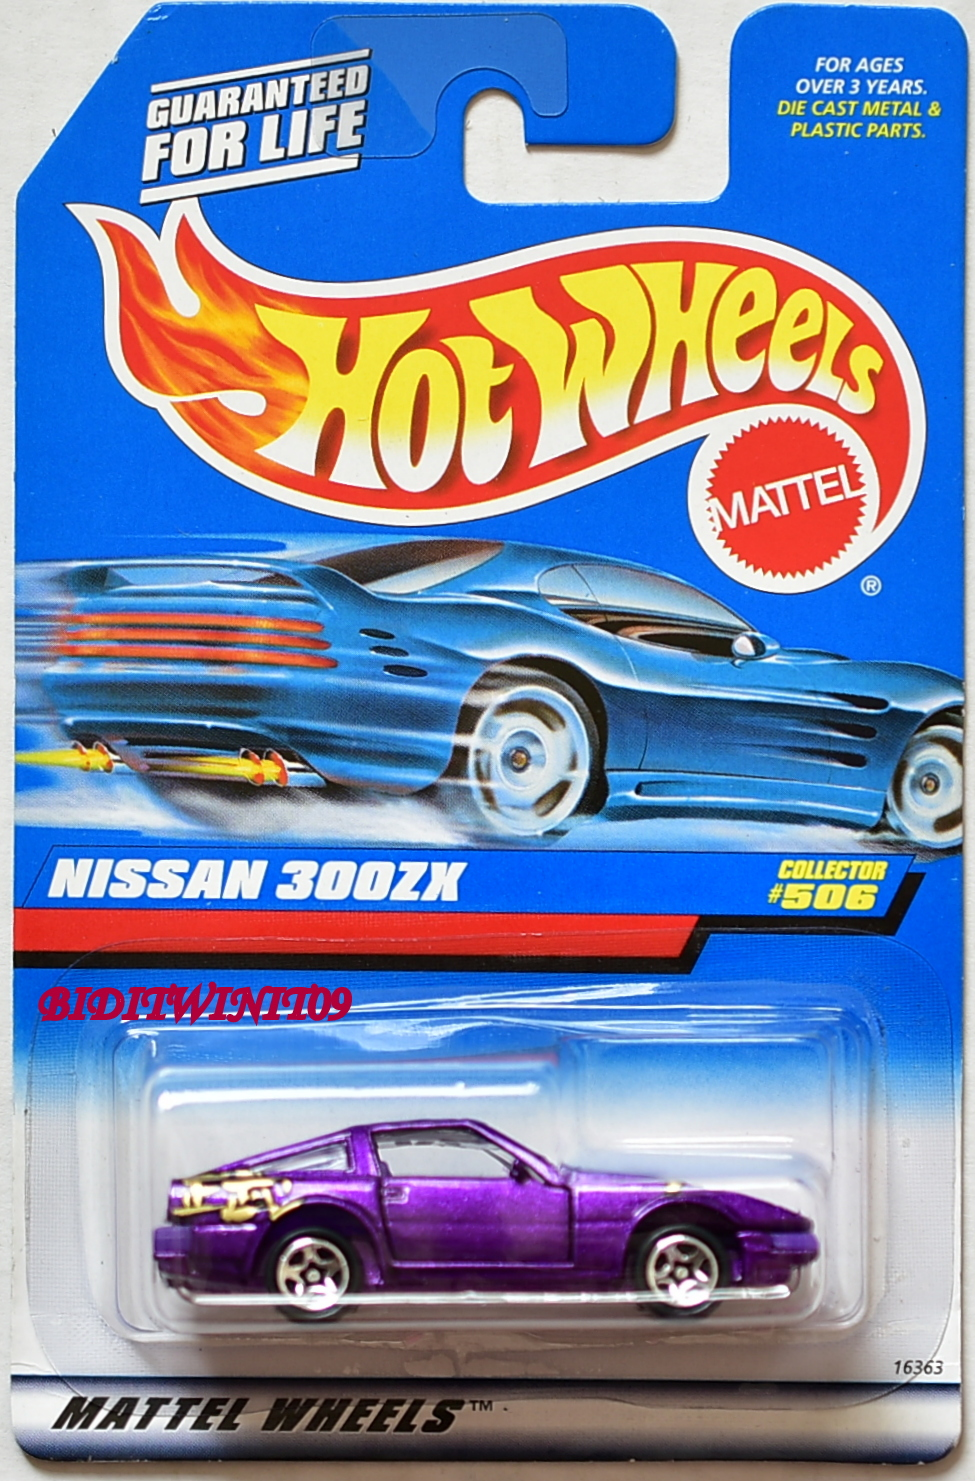 HOT WHEELS 1998 NISSAN 300ZX COLLECTOR #506 PURPLE